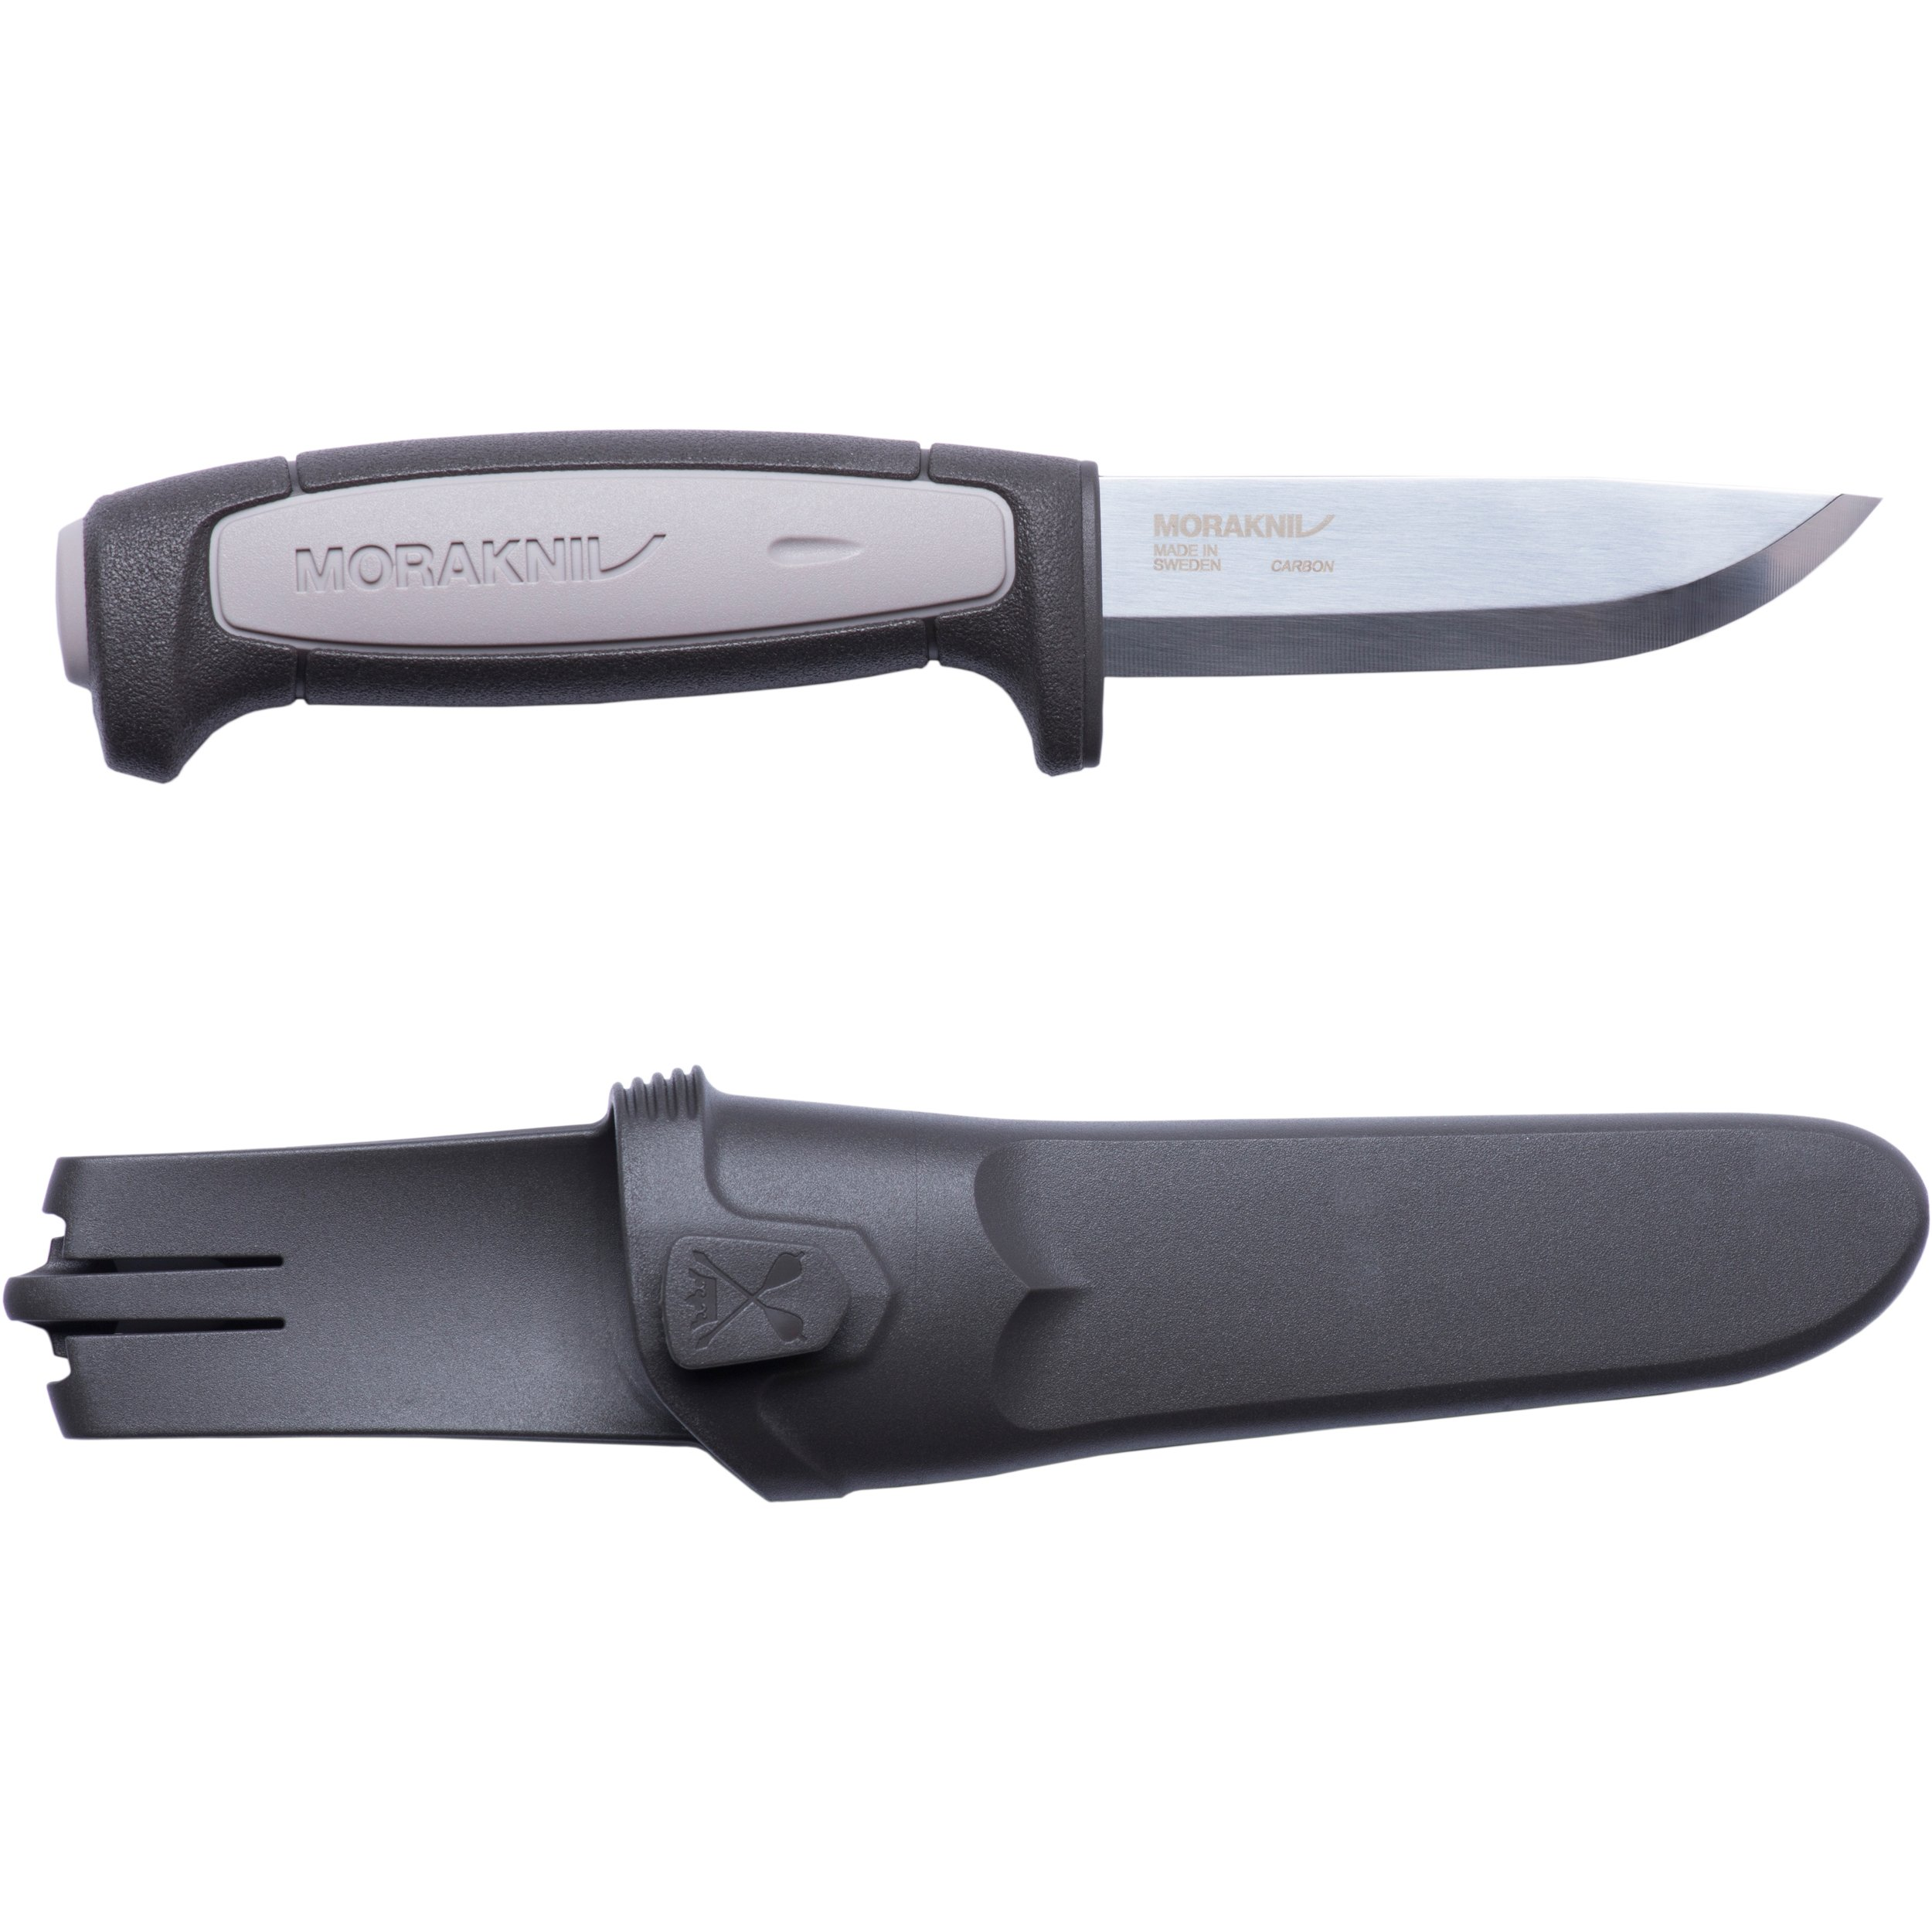 Morakniv Craftline Robust Trade Knife with Carbon Steel Blade and Combi Sheath (3.6-Inches)